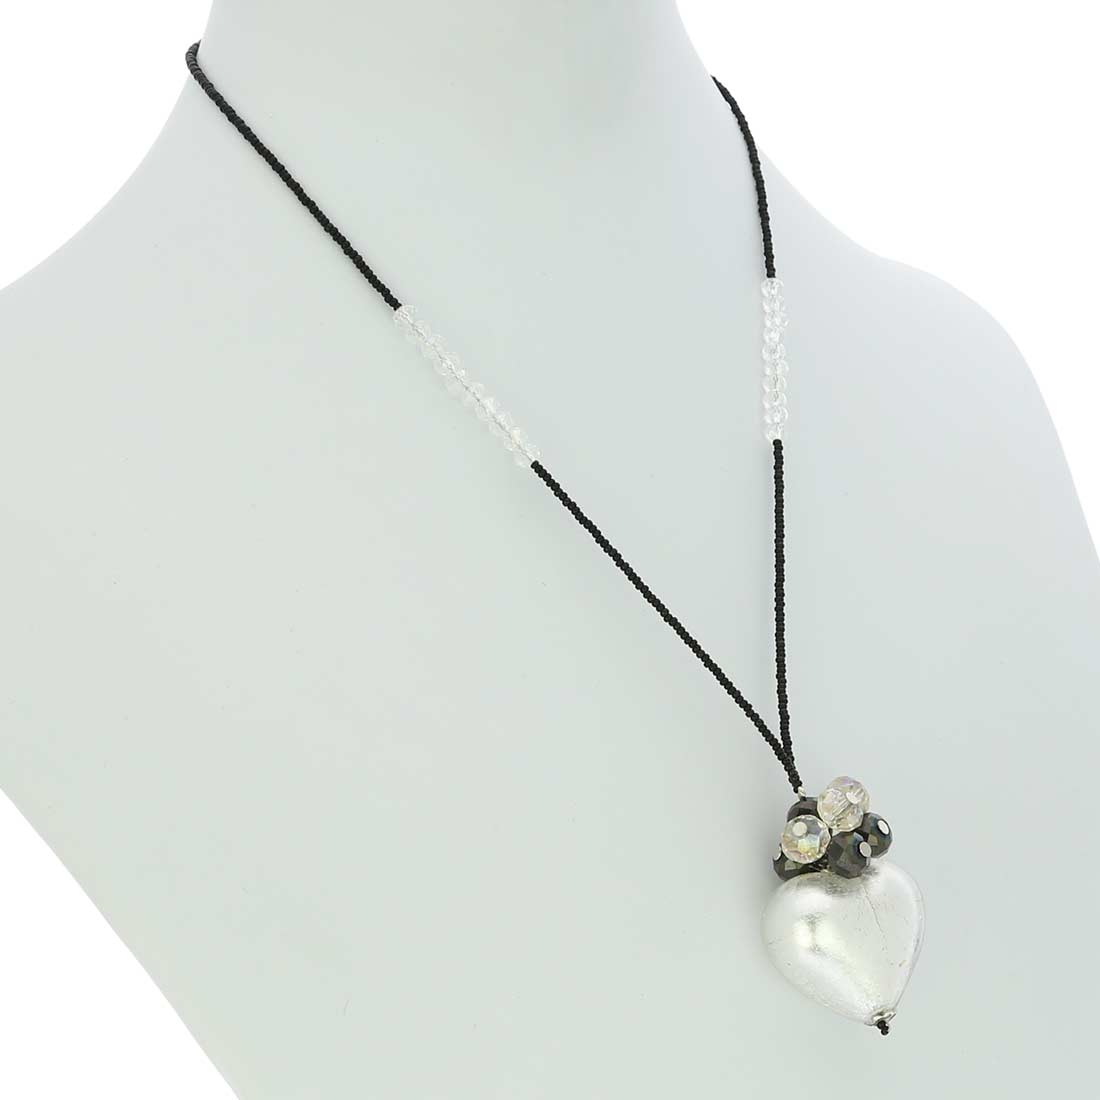 Venetian Love Heart Necklace - Silver